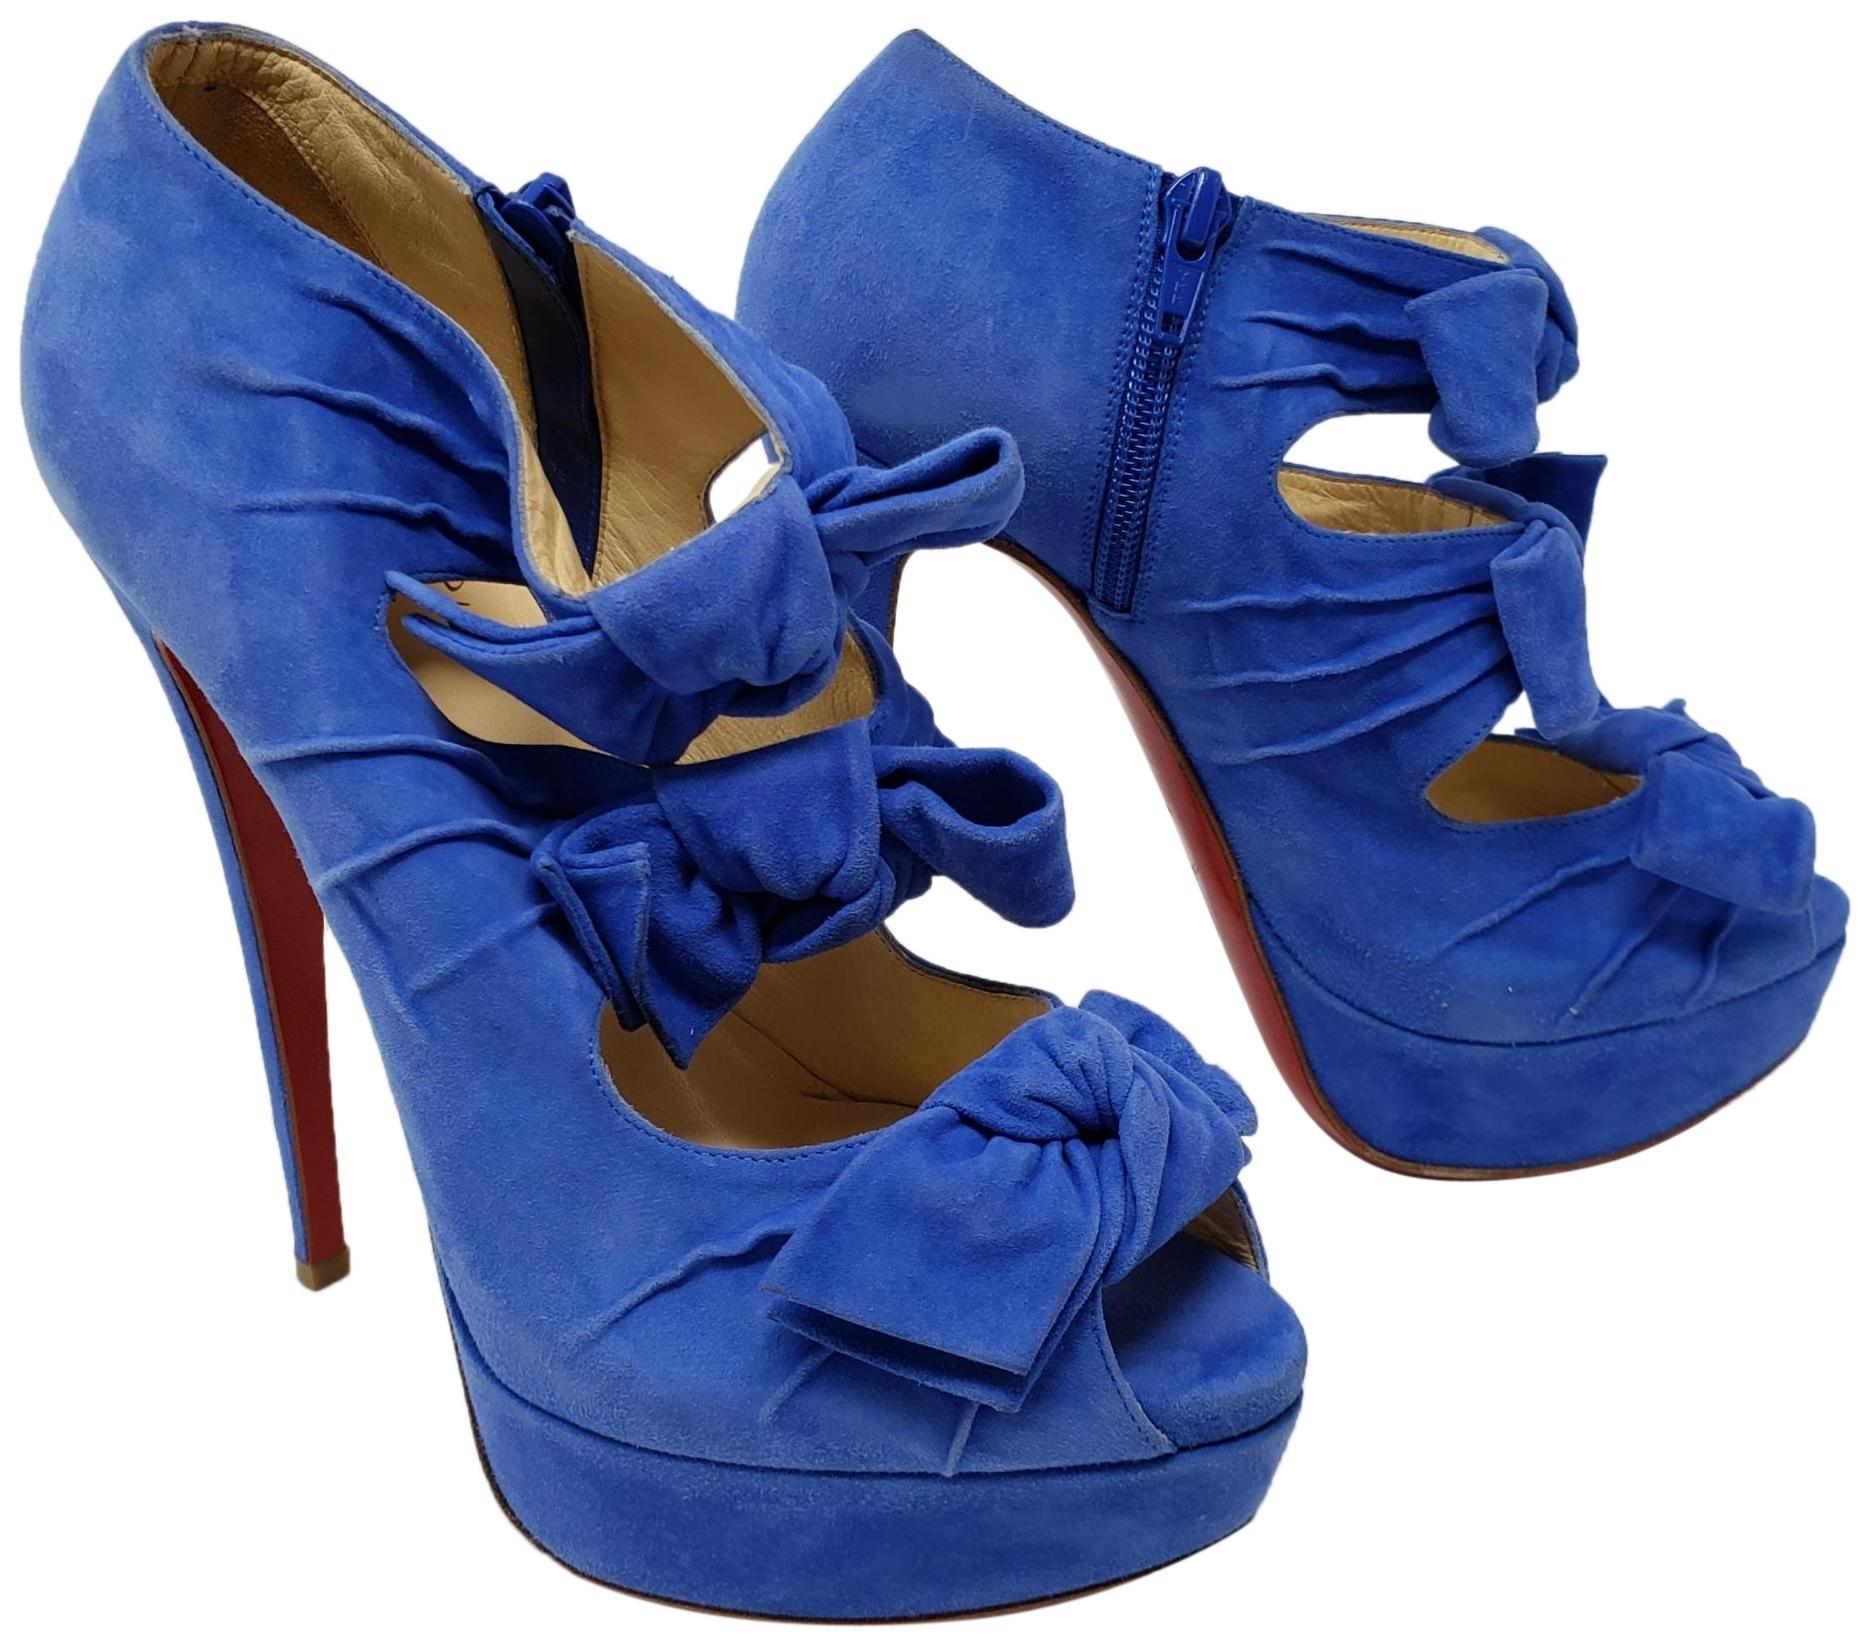 Christian Louboutin Blue Suede Madame Butterfly Bow Cutout Boots/Booties Size EU 38 (Approx. US 8) Regular (M, B)